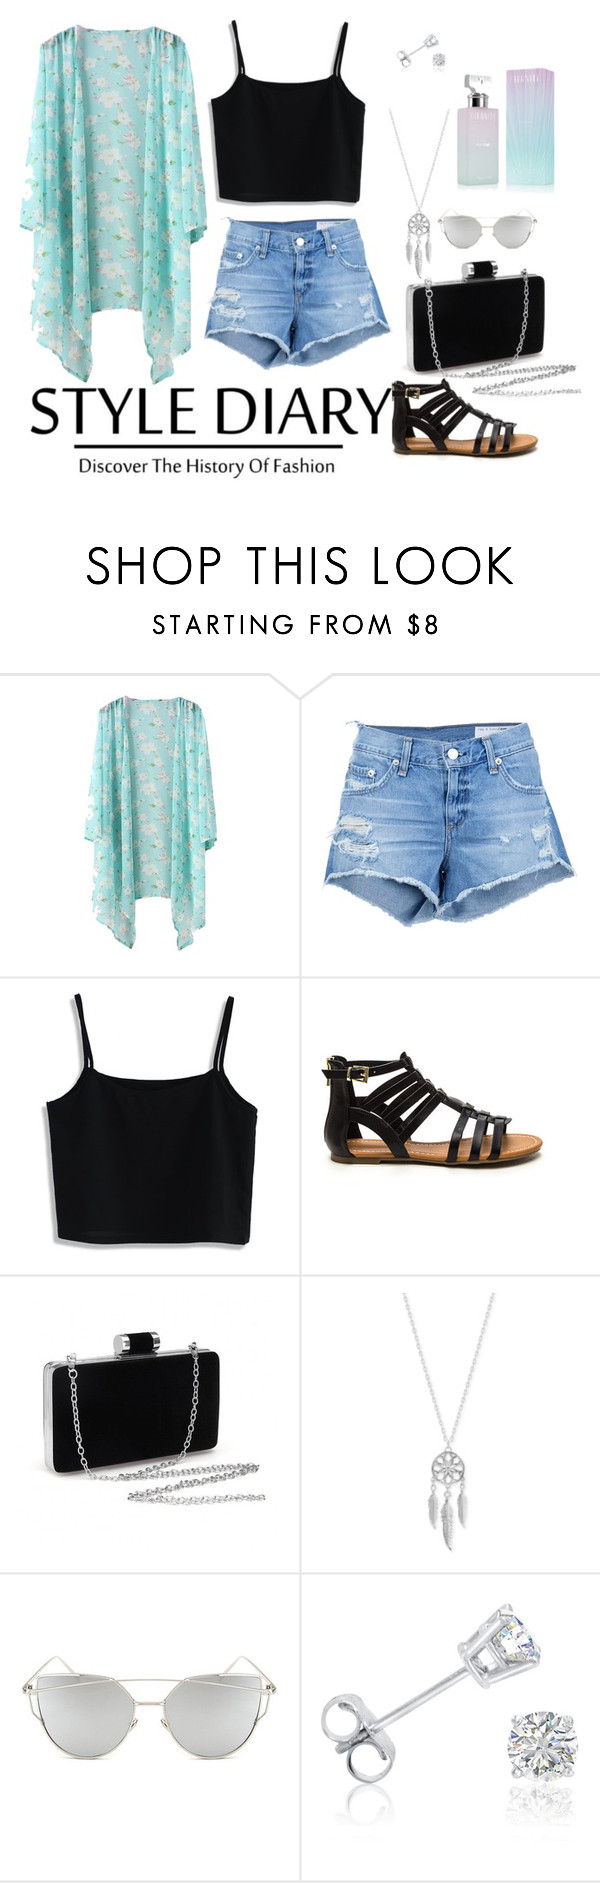 """""""sumner style"""" by lili55599 ❤ liked on Polyvore featuring rag & bone/JEAN, Chicwish, Lucky Brand, Chicnova Fashion, Amanda Rose Collection and Calvin Klein"""